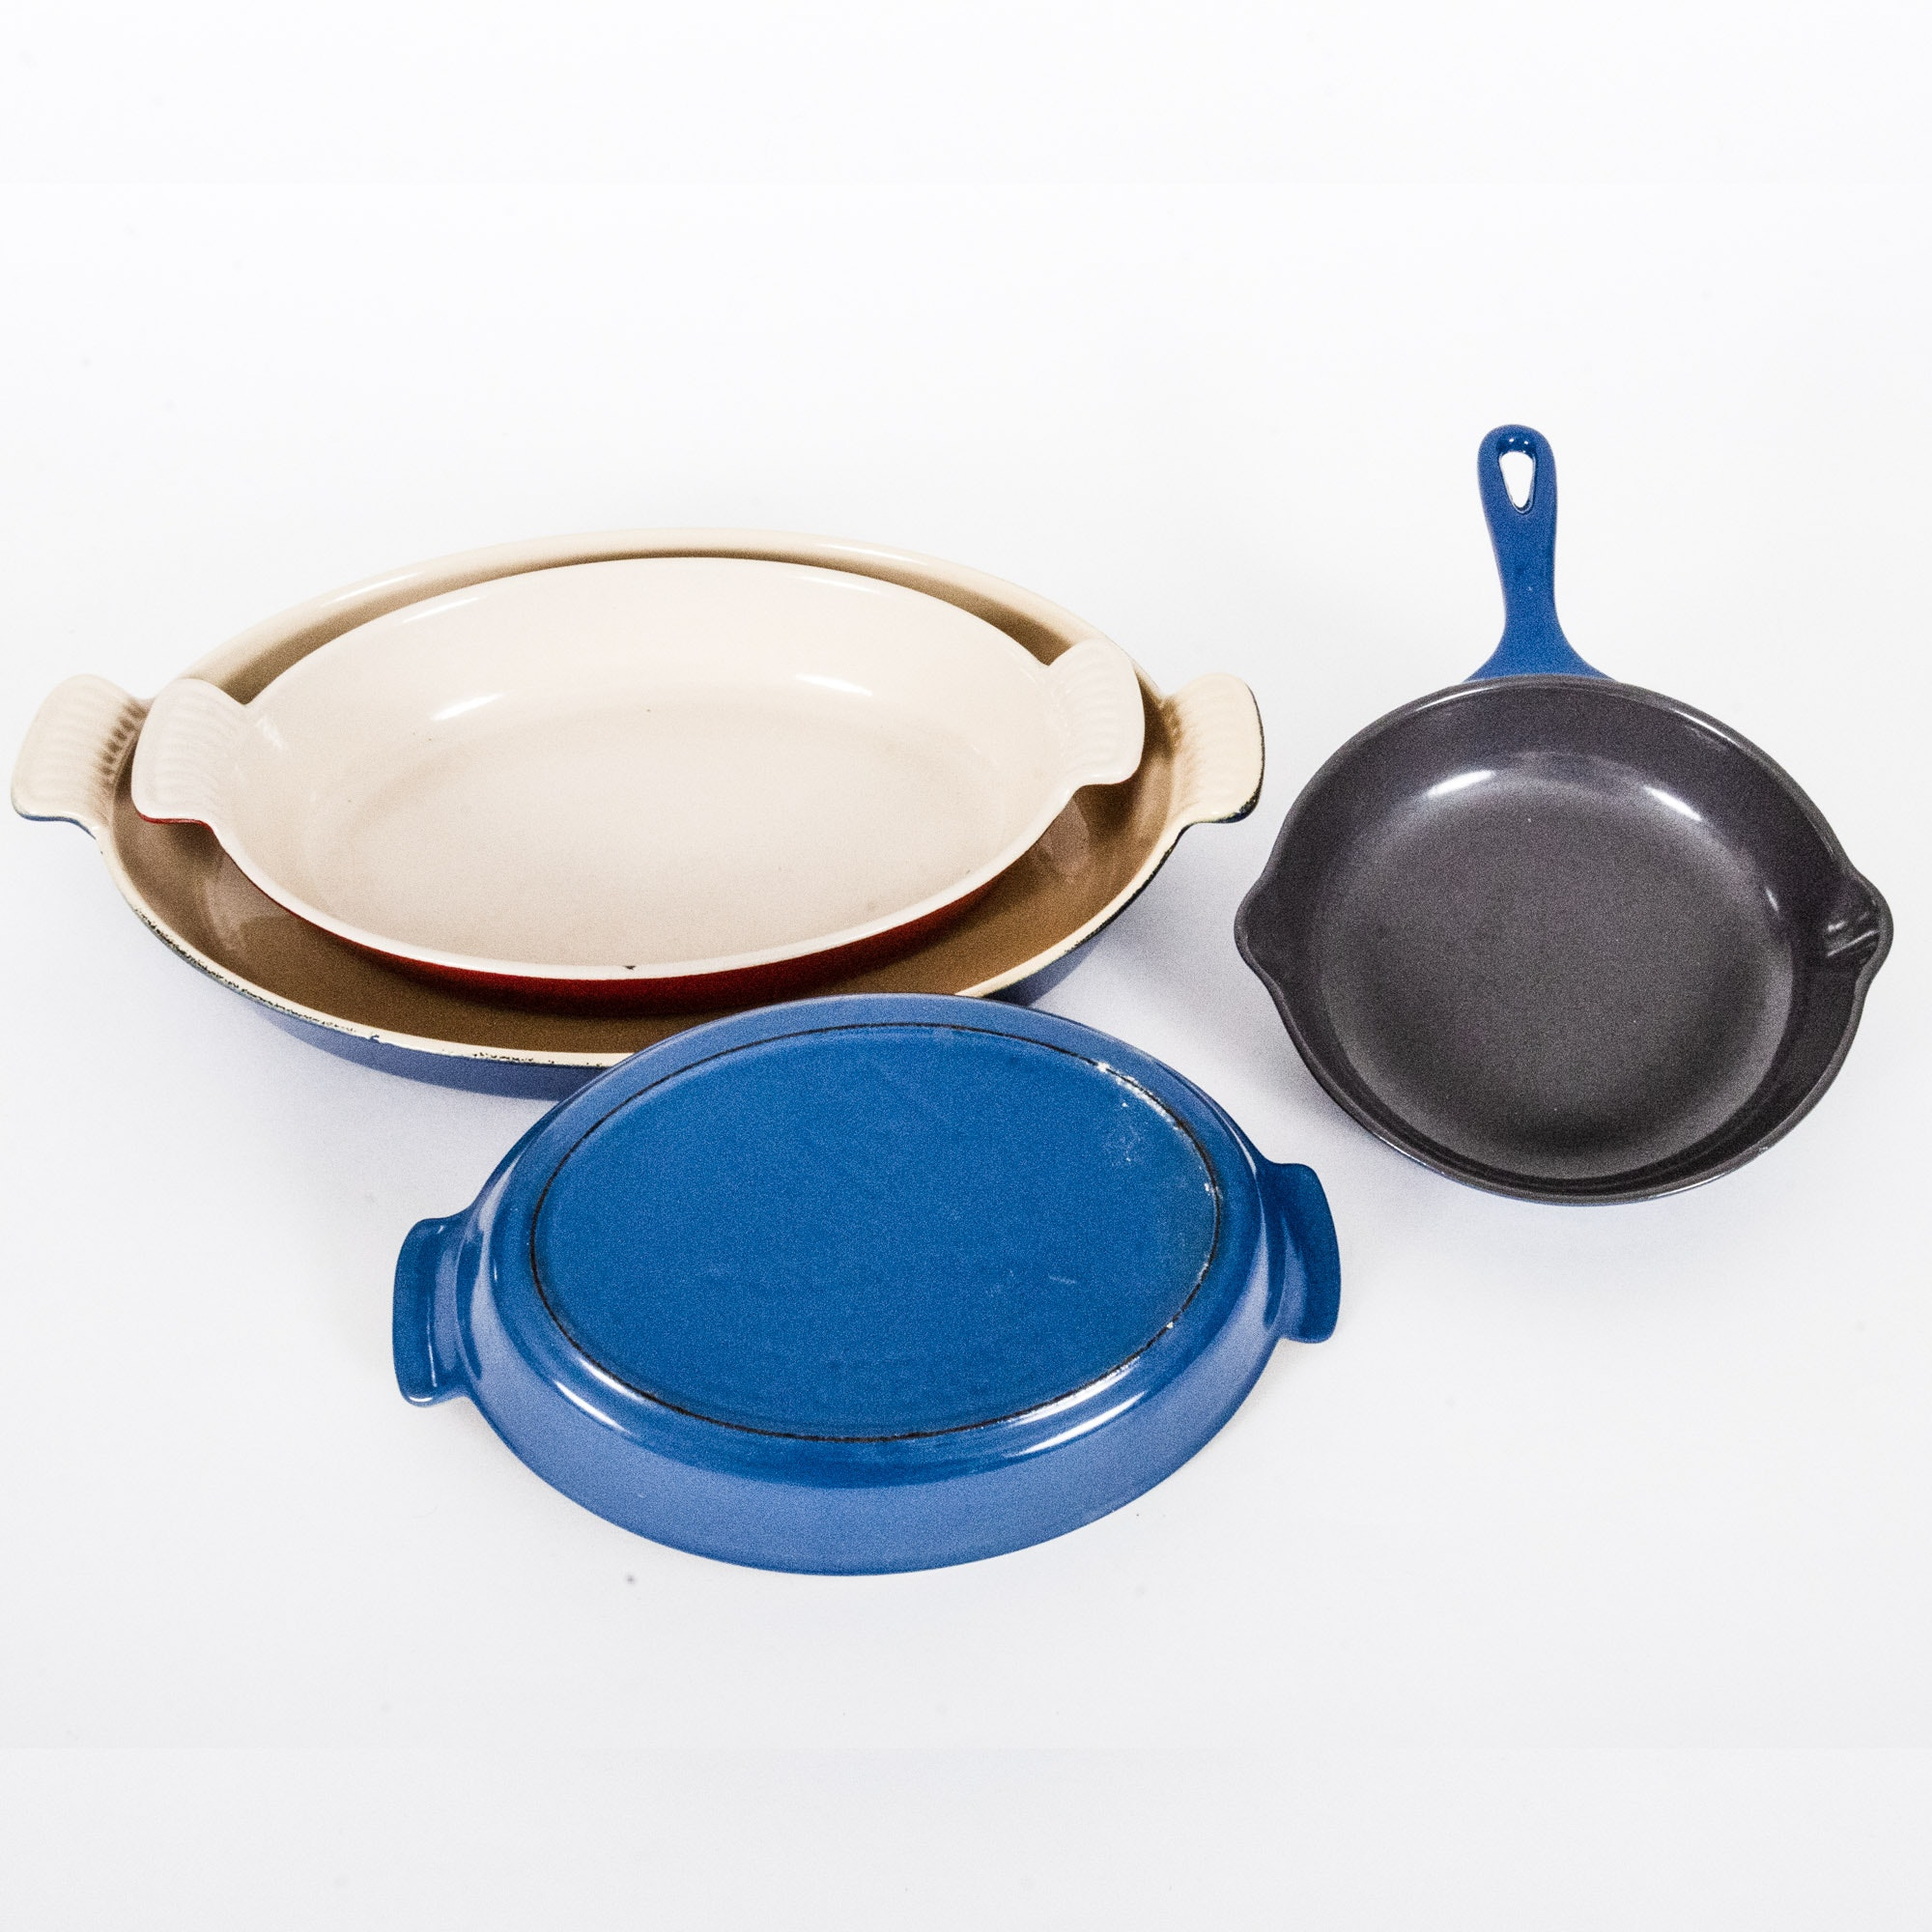 Le Creuset Enamel and Cast Iron Baking Dishes and Fry Pan